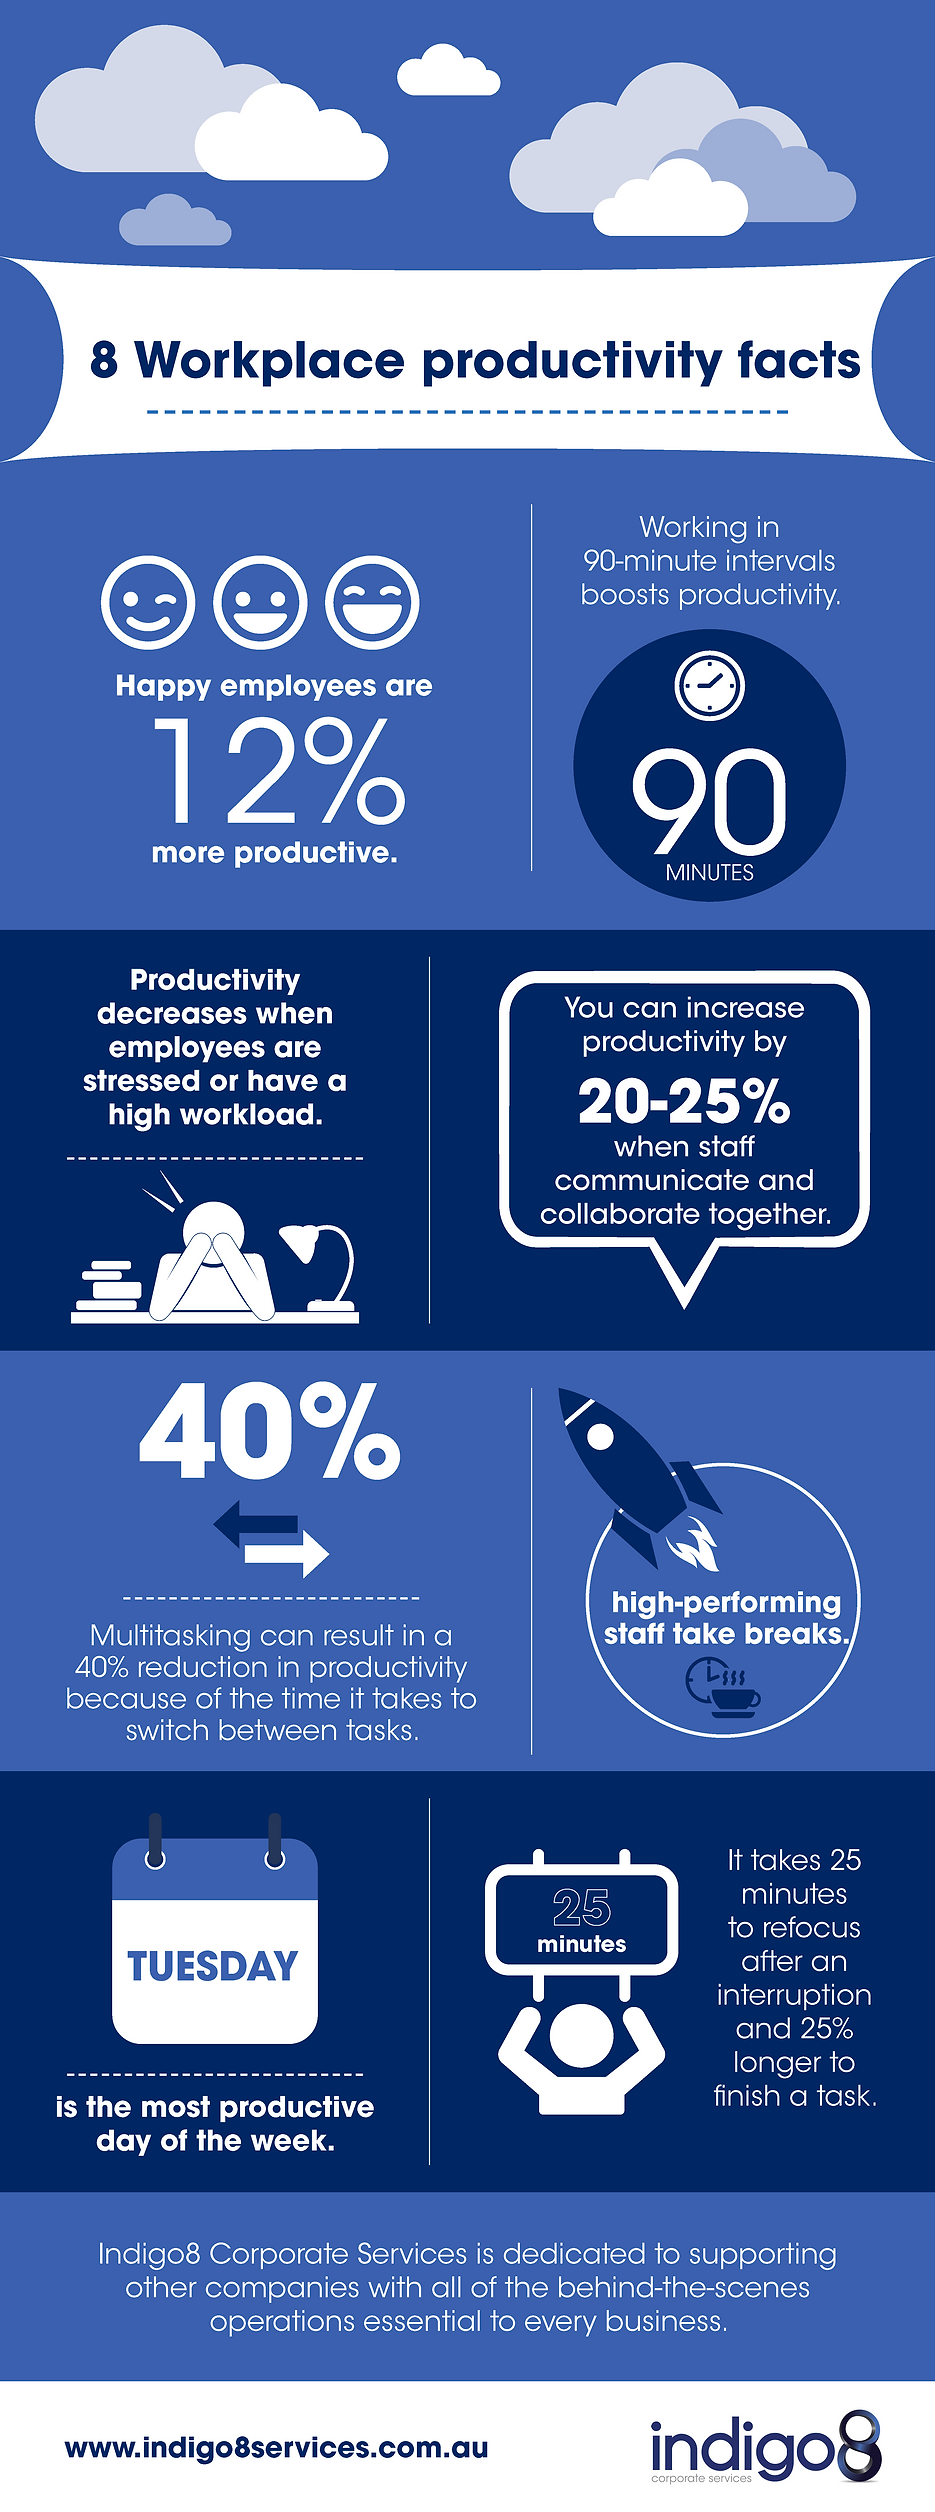 Productivity in the workplace_Indigo8.pn